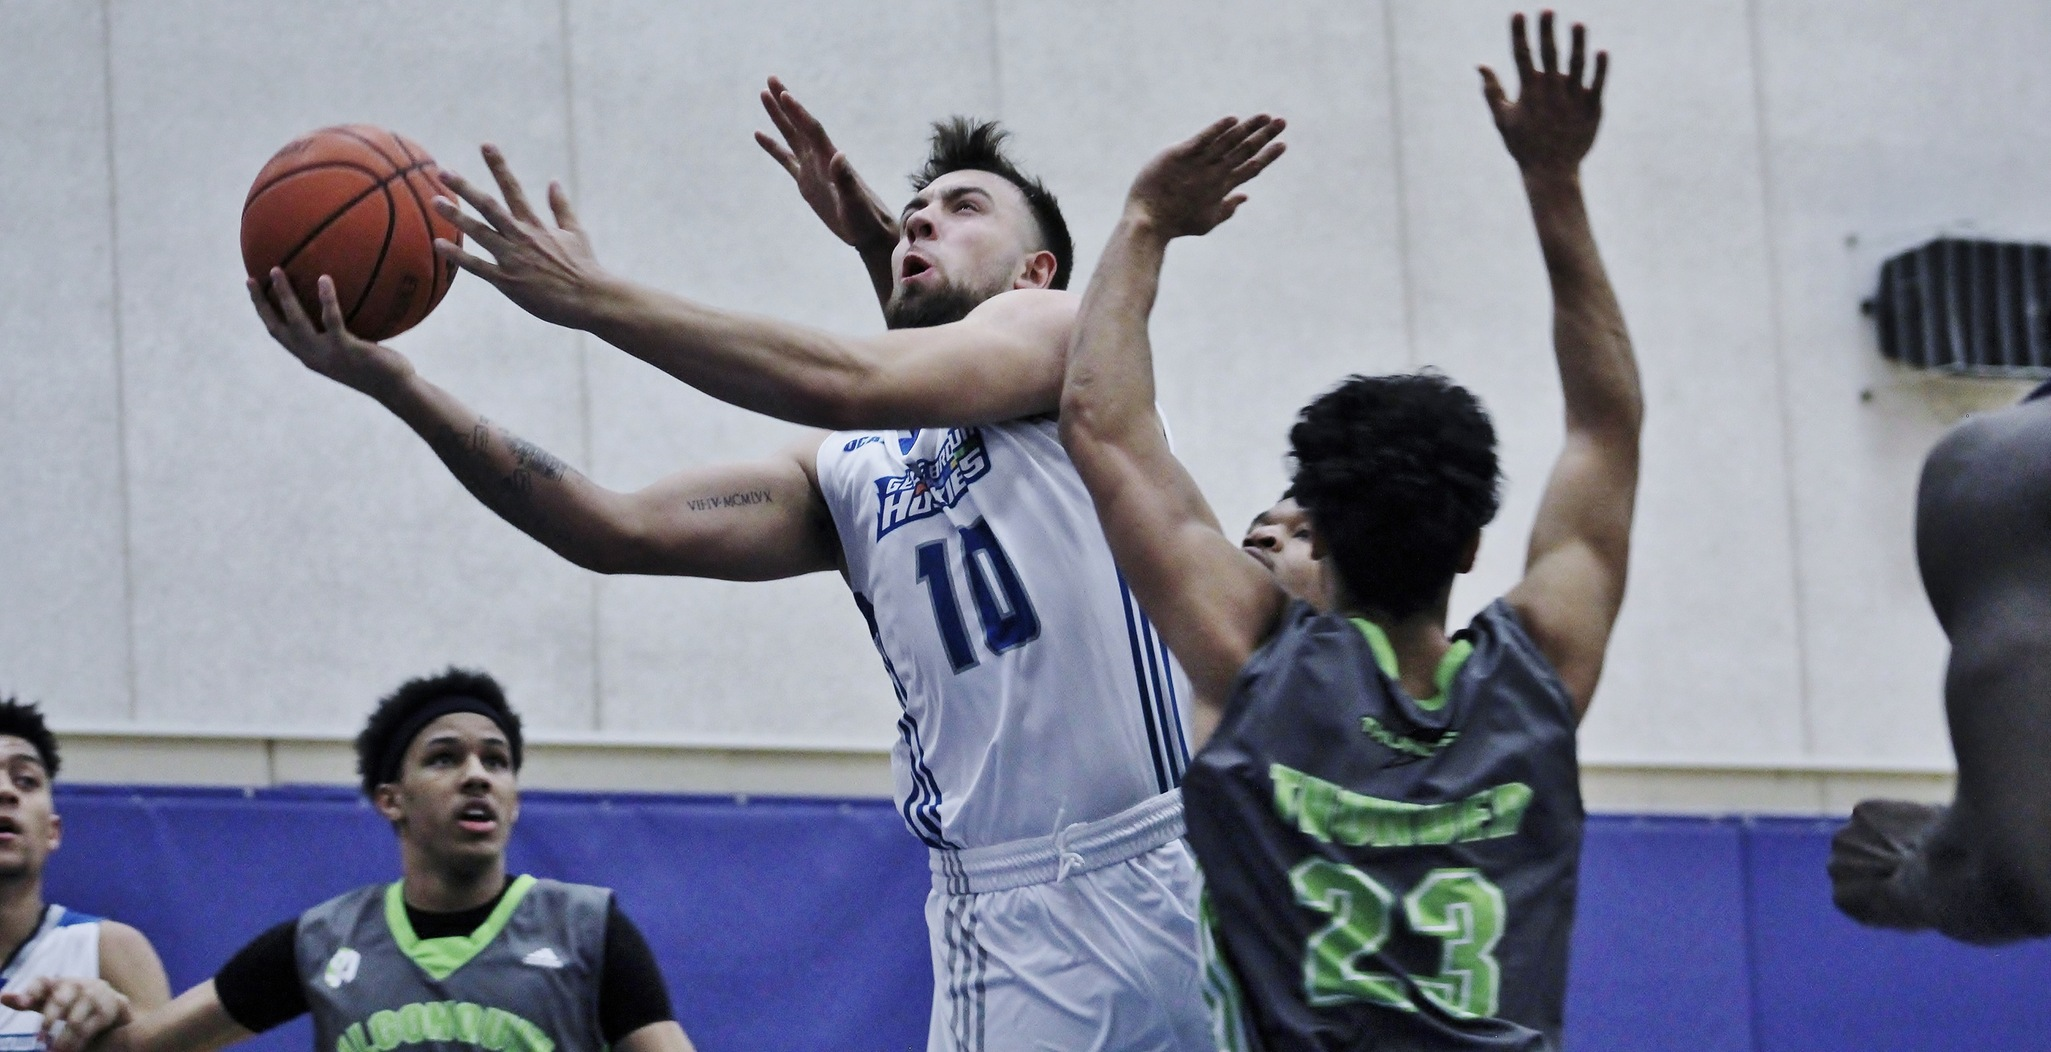 12-2 HUSKIES MEN'S BASKETBALL STAY PERFECT AT HOME WITH 97-80 WIN OVER ALGONQUIN